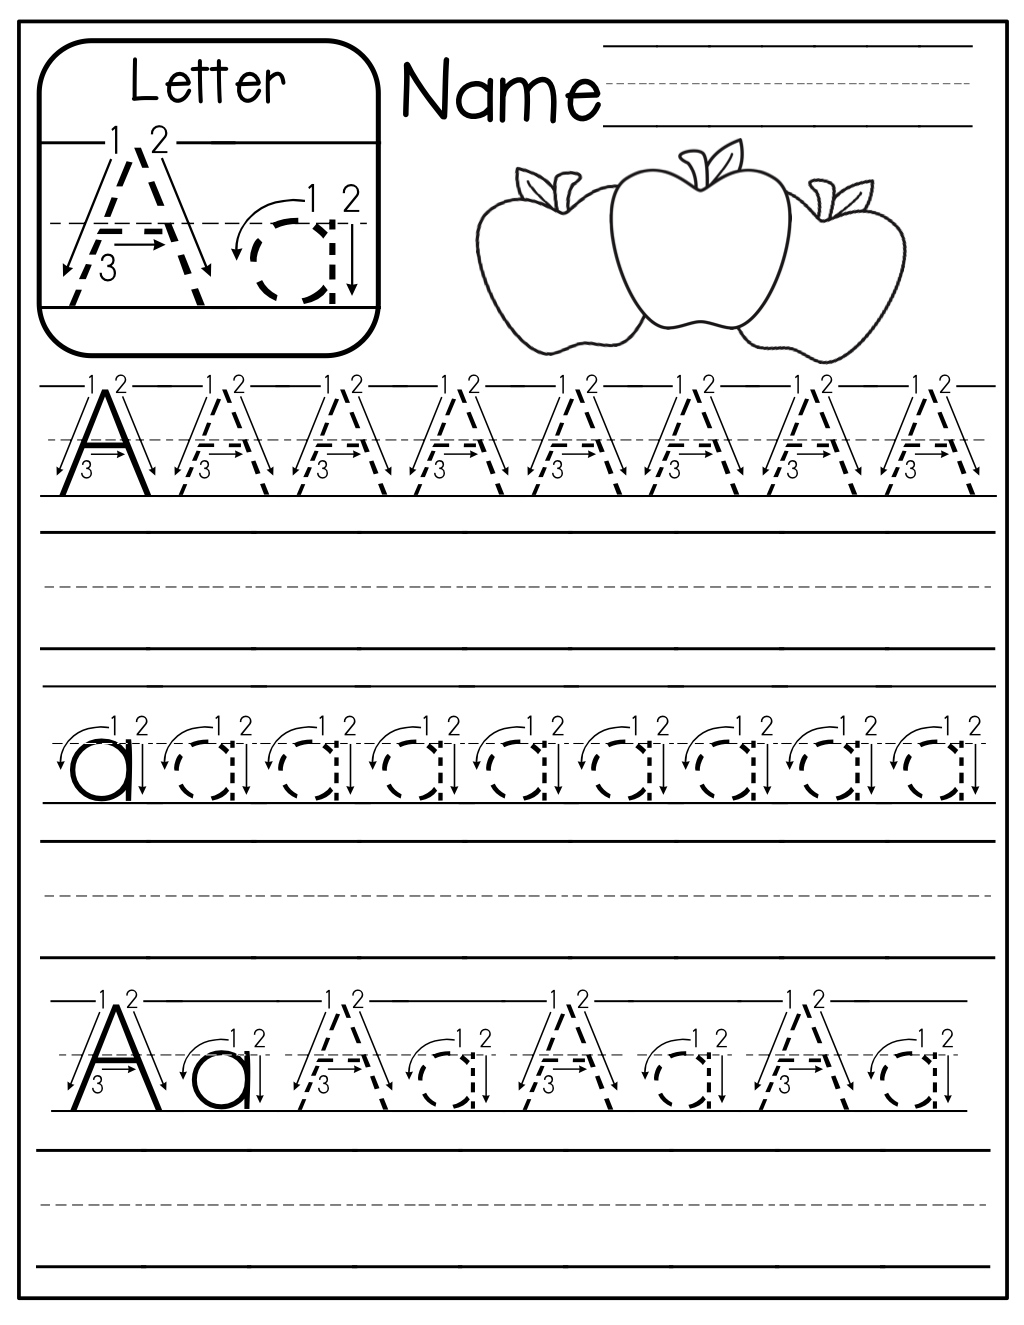 Handwriting Worksheet Az